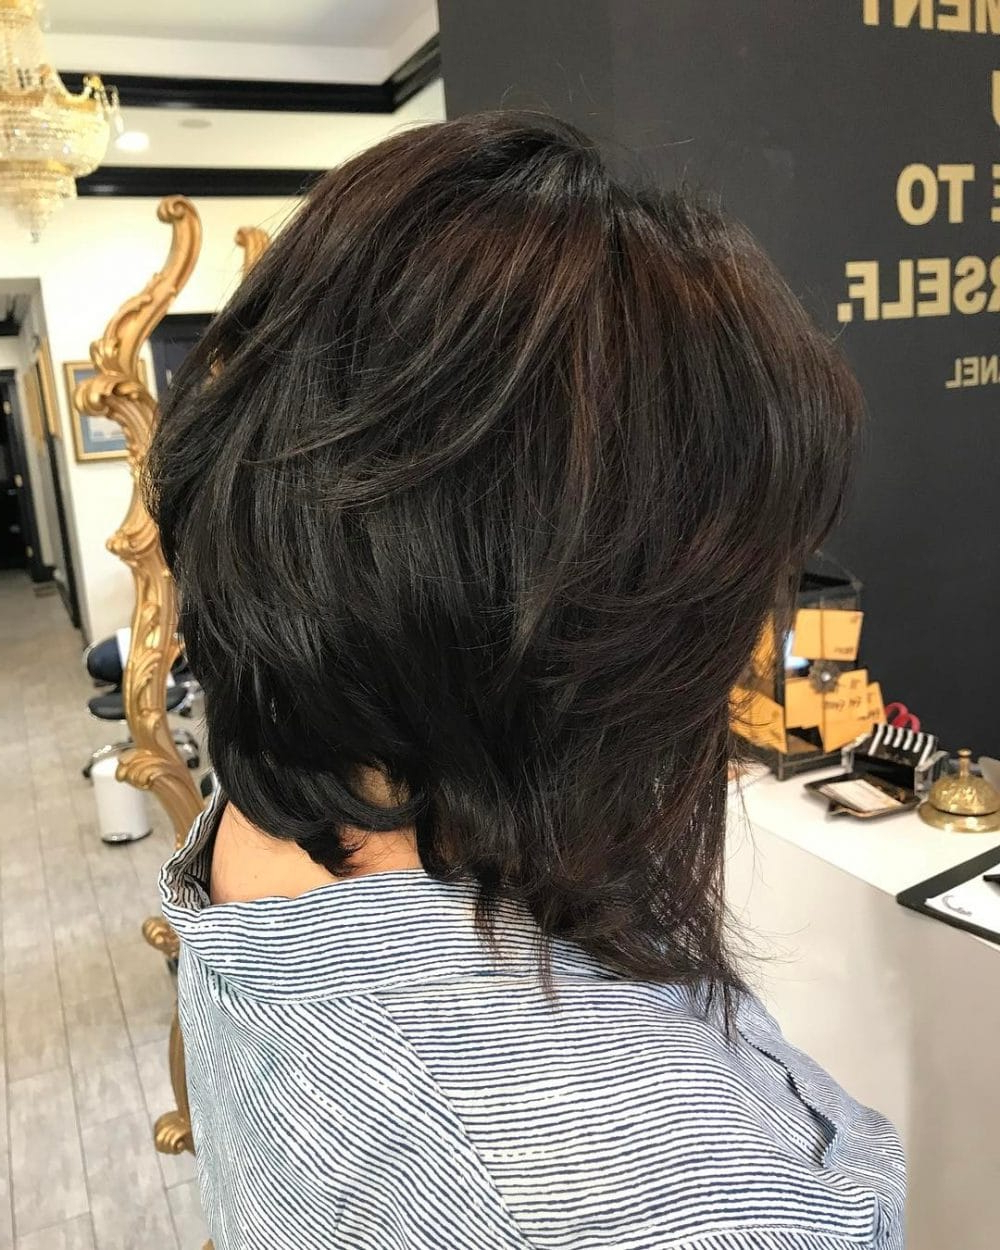 26 Modern Shag Haircuts To Try In 2019 With Tapered Shaggy Chocolate Brown Bob Hairstyles (View 11 of 20)